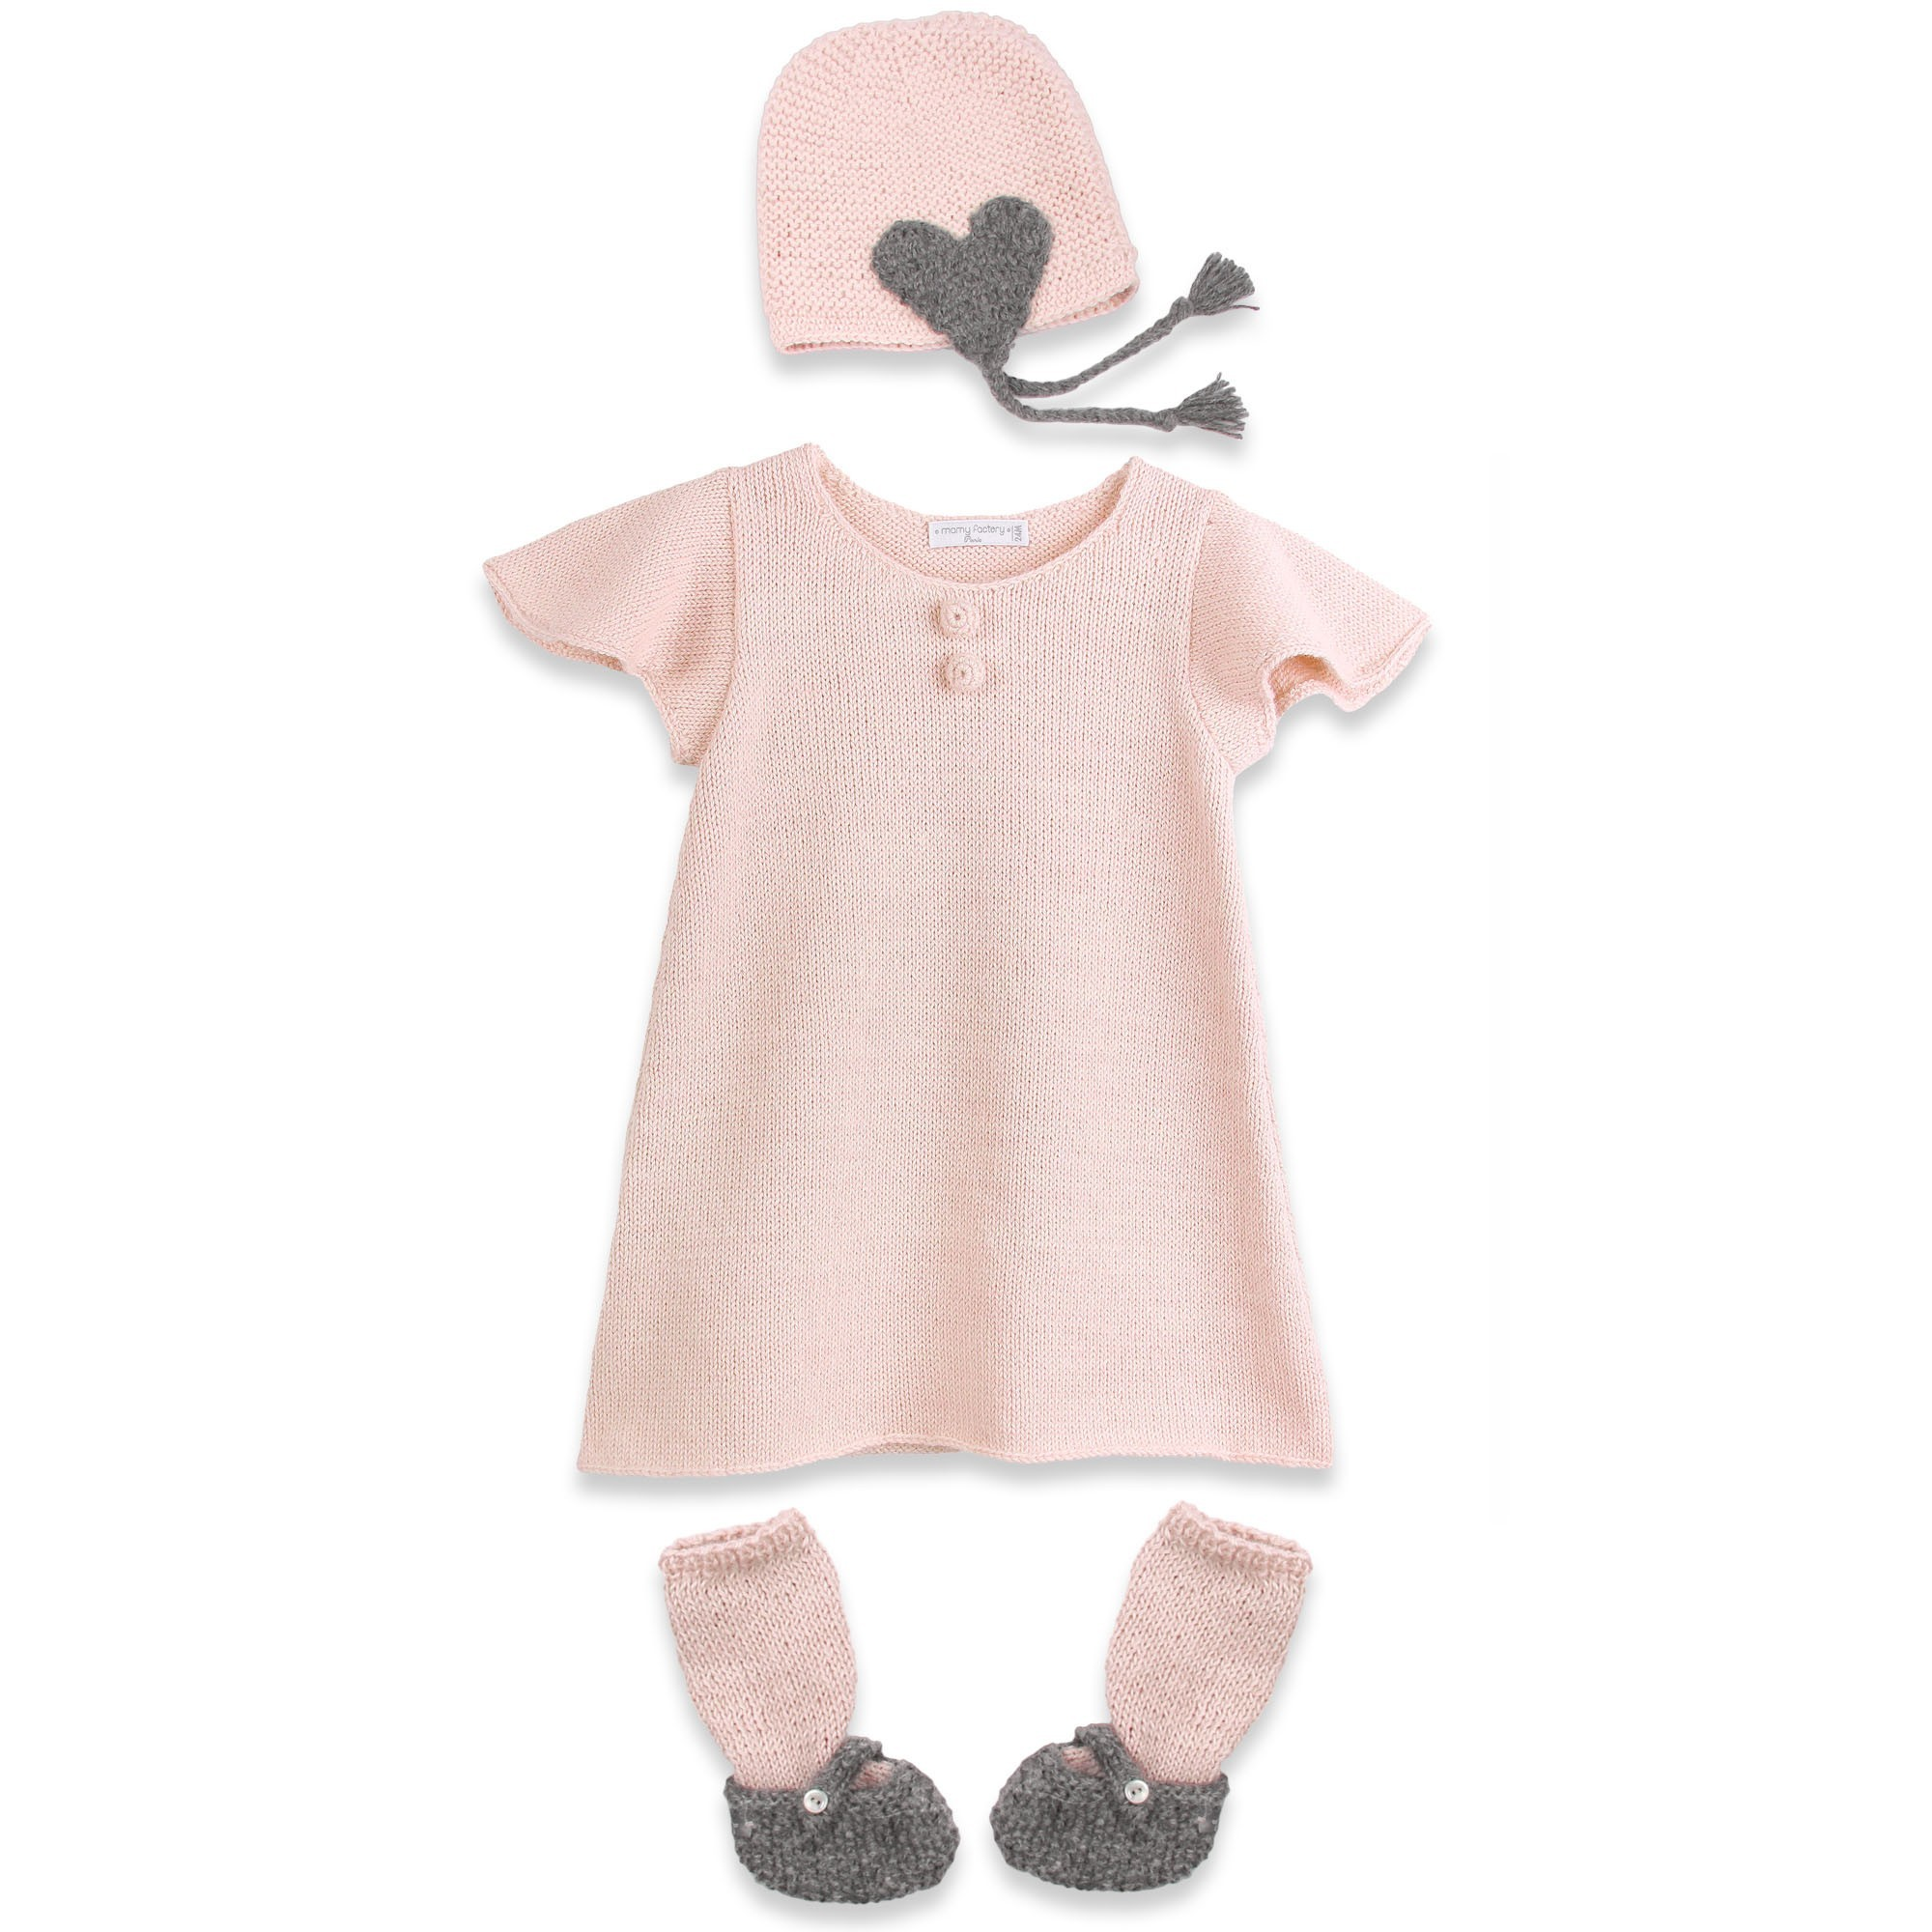 Pink baby dress and cap with ballerina slippers made from 100% alpaca. Knitted with moss and stockinette stitches - pink